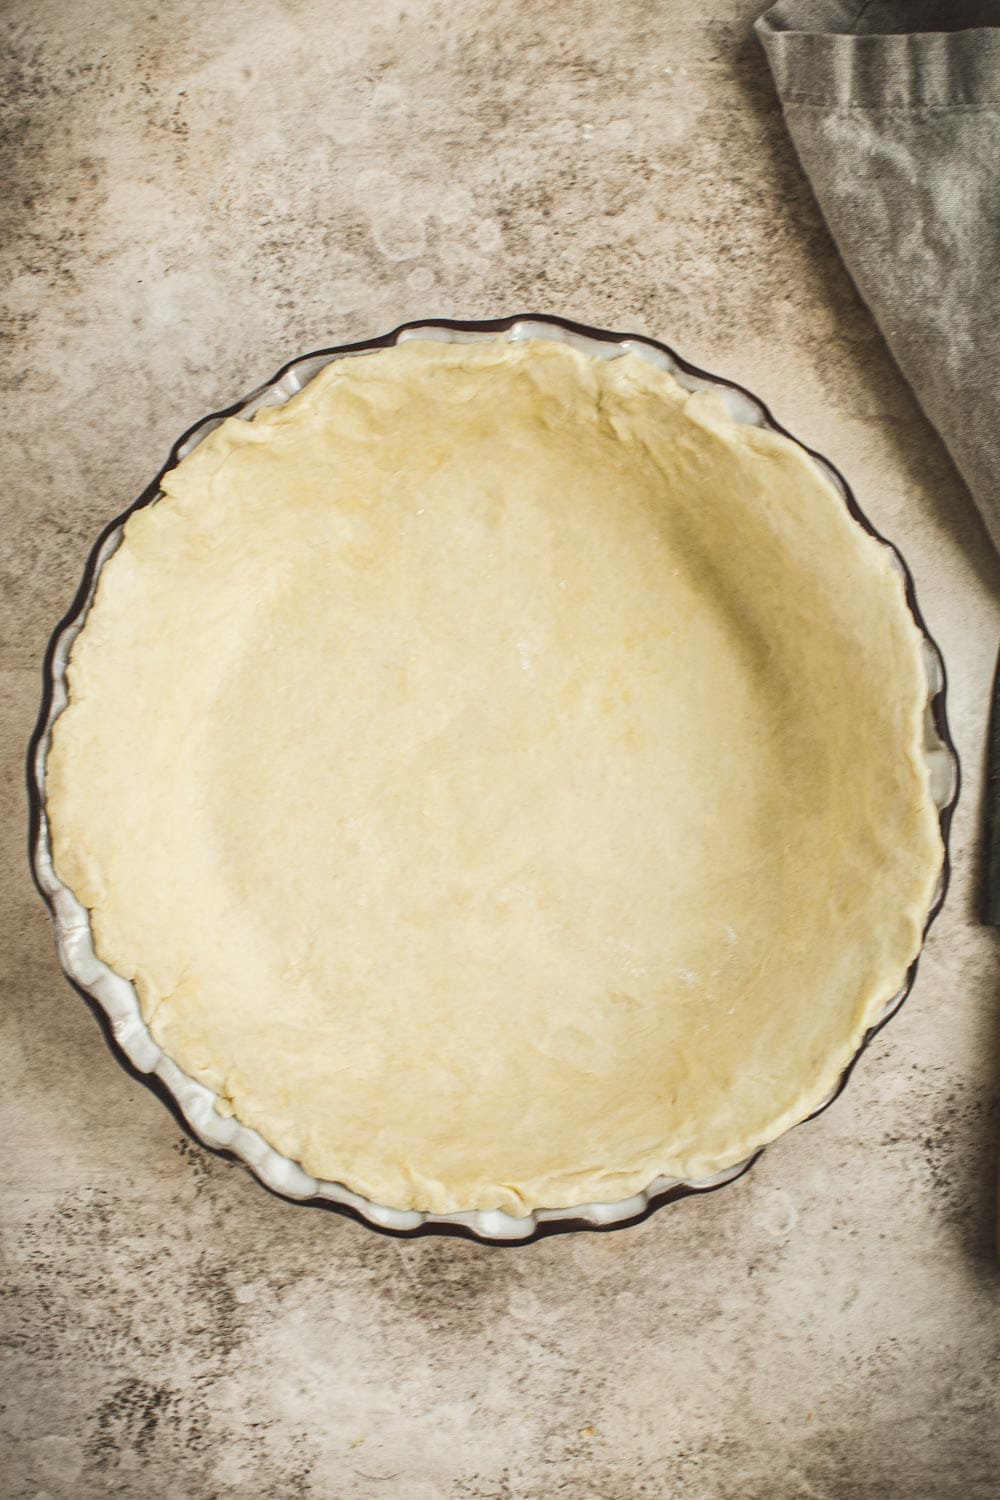 Unbaked pie shell in pie dish.